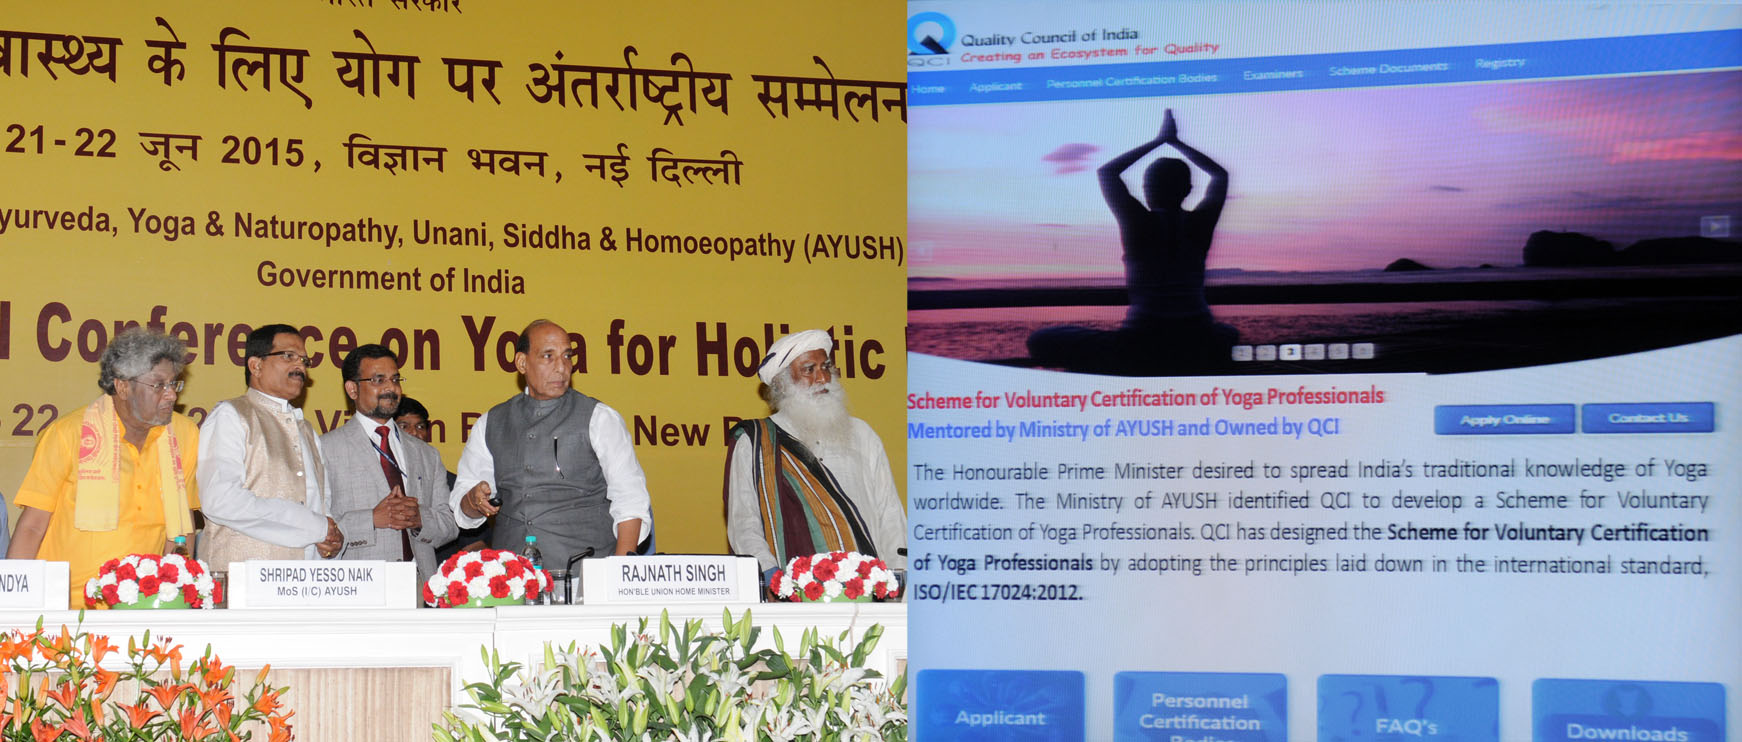 """The Union Home Minister, Shri Rajnath Singh launching the """"Scheme for Voluntary Certification of Yoga Professionals"""", at the International Conference on Yoga for Holistic Health, in New Delhi on June 22, 2015. The Minister of State for AYUSH (Independent Charge) and Health & Family Welfare, Shri Shripad Yesso Naik and other dignitaries are also seen."""